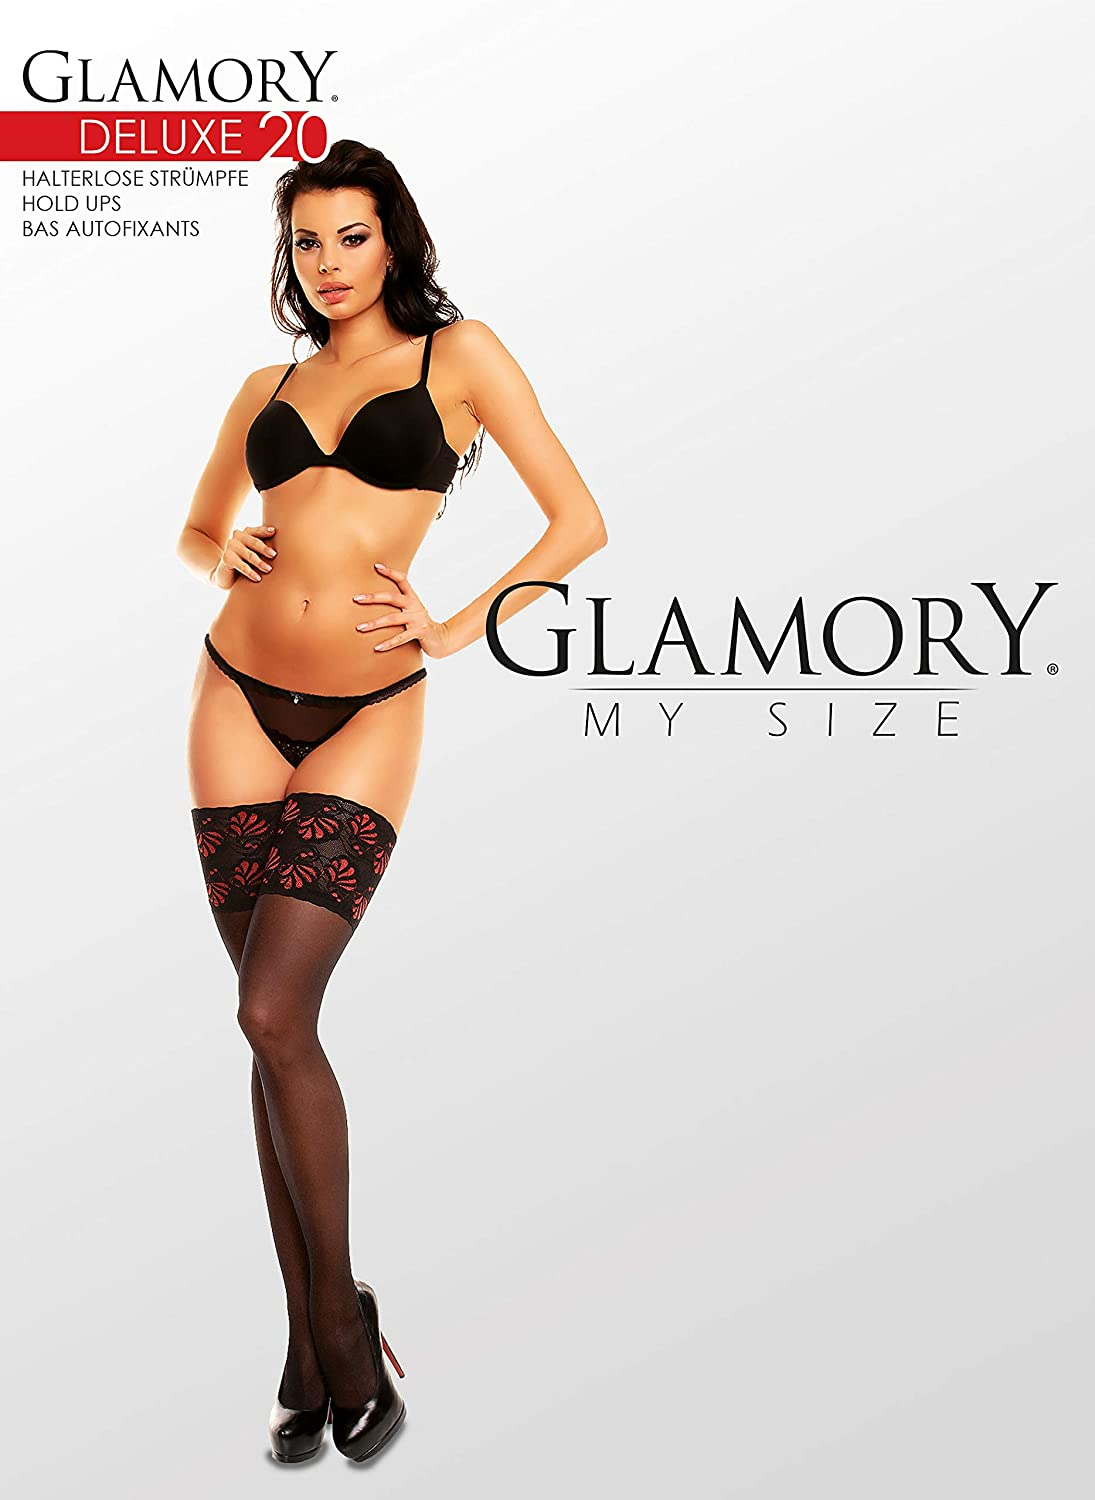 20 DEN XXXX-Large Donna GLAMORY Deluxe 20 Collant Multicolore Schwarz//Rot